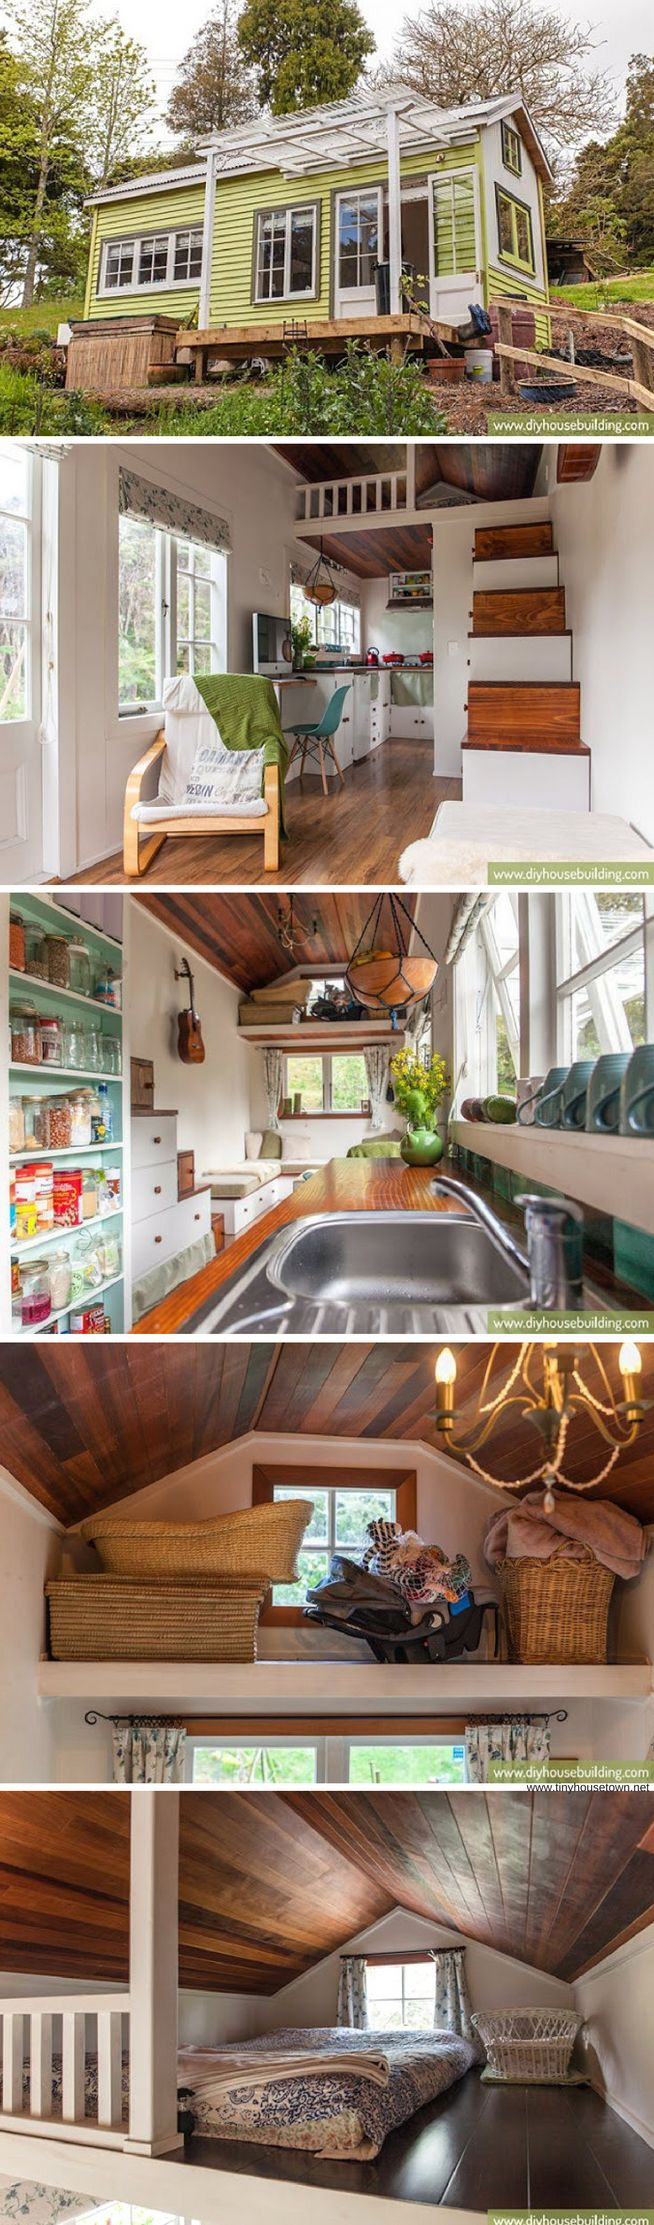 Lucy: a 186 sq ft tiny house that a family of three lives in! (Top Design Home)